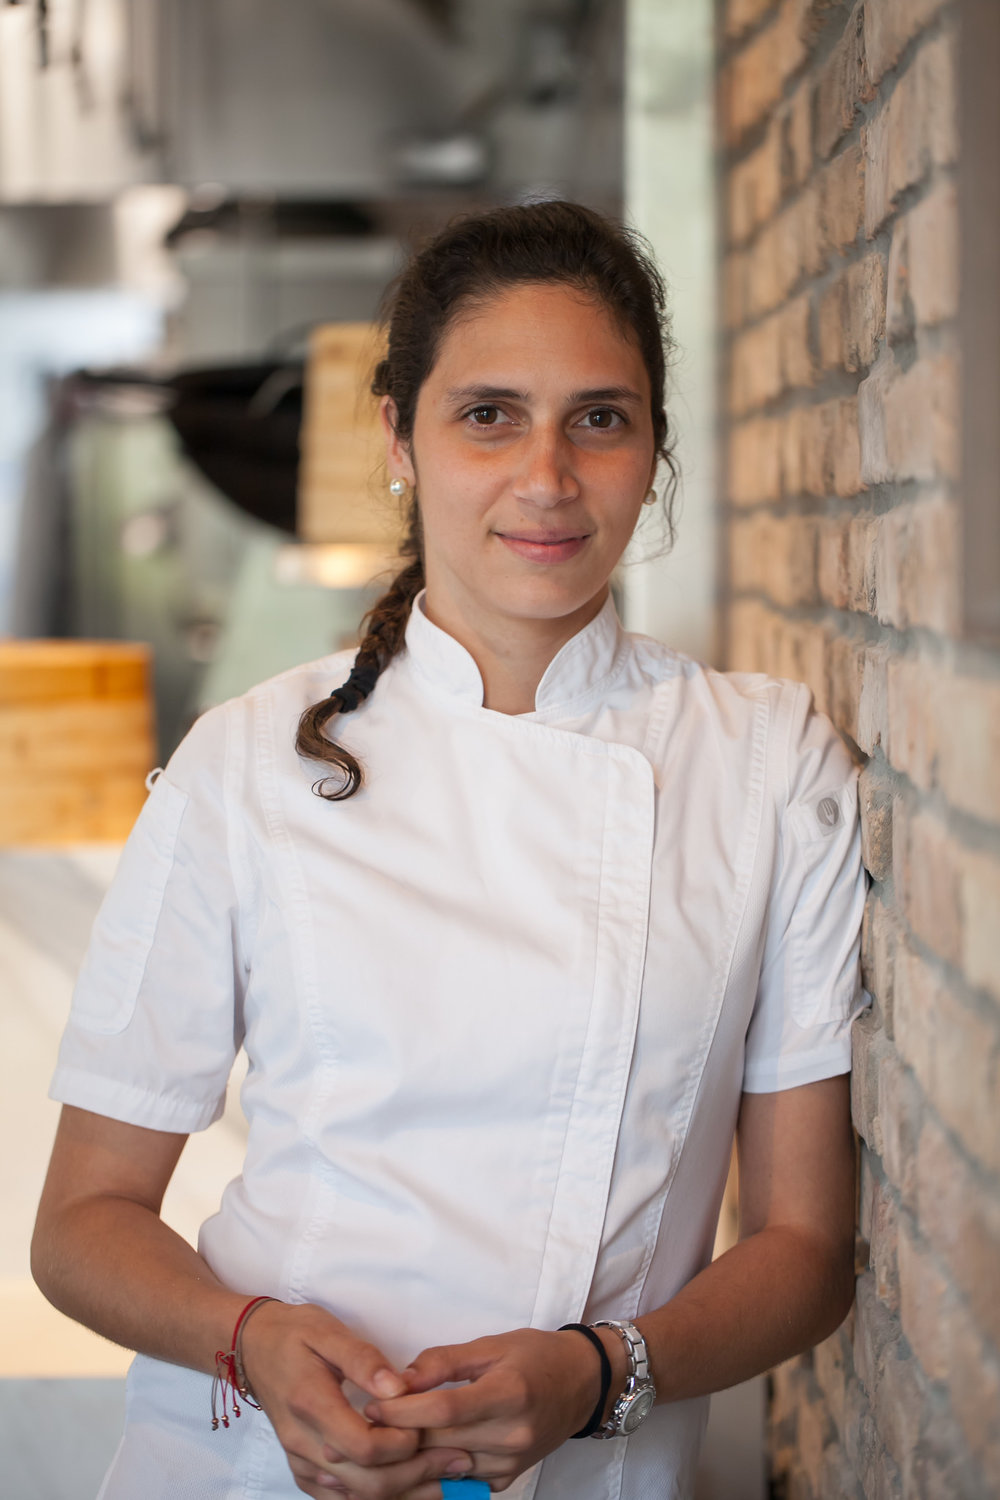 NATALIA ATUESTA, PASTRY CHEF: Born in Atlanta, GA and raised in Santiago de Chile, Pastry Chef Natalia Restrepo has always had a passion for pastries. Growing up in a Jewish household, Babkas, Kuchen and other pastries were part of her upbringing. Natalia studied Culinary Arts at Inacap in Santiago, worked for several concepts by Ferran Adria and was the Director of Operations for Barandarian Restaurant Group before coming back to the States. She and Pablo Zitzmann are the proud parents of Nicholas Zitzmann, the next on the line at No Name Chinese.